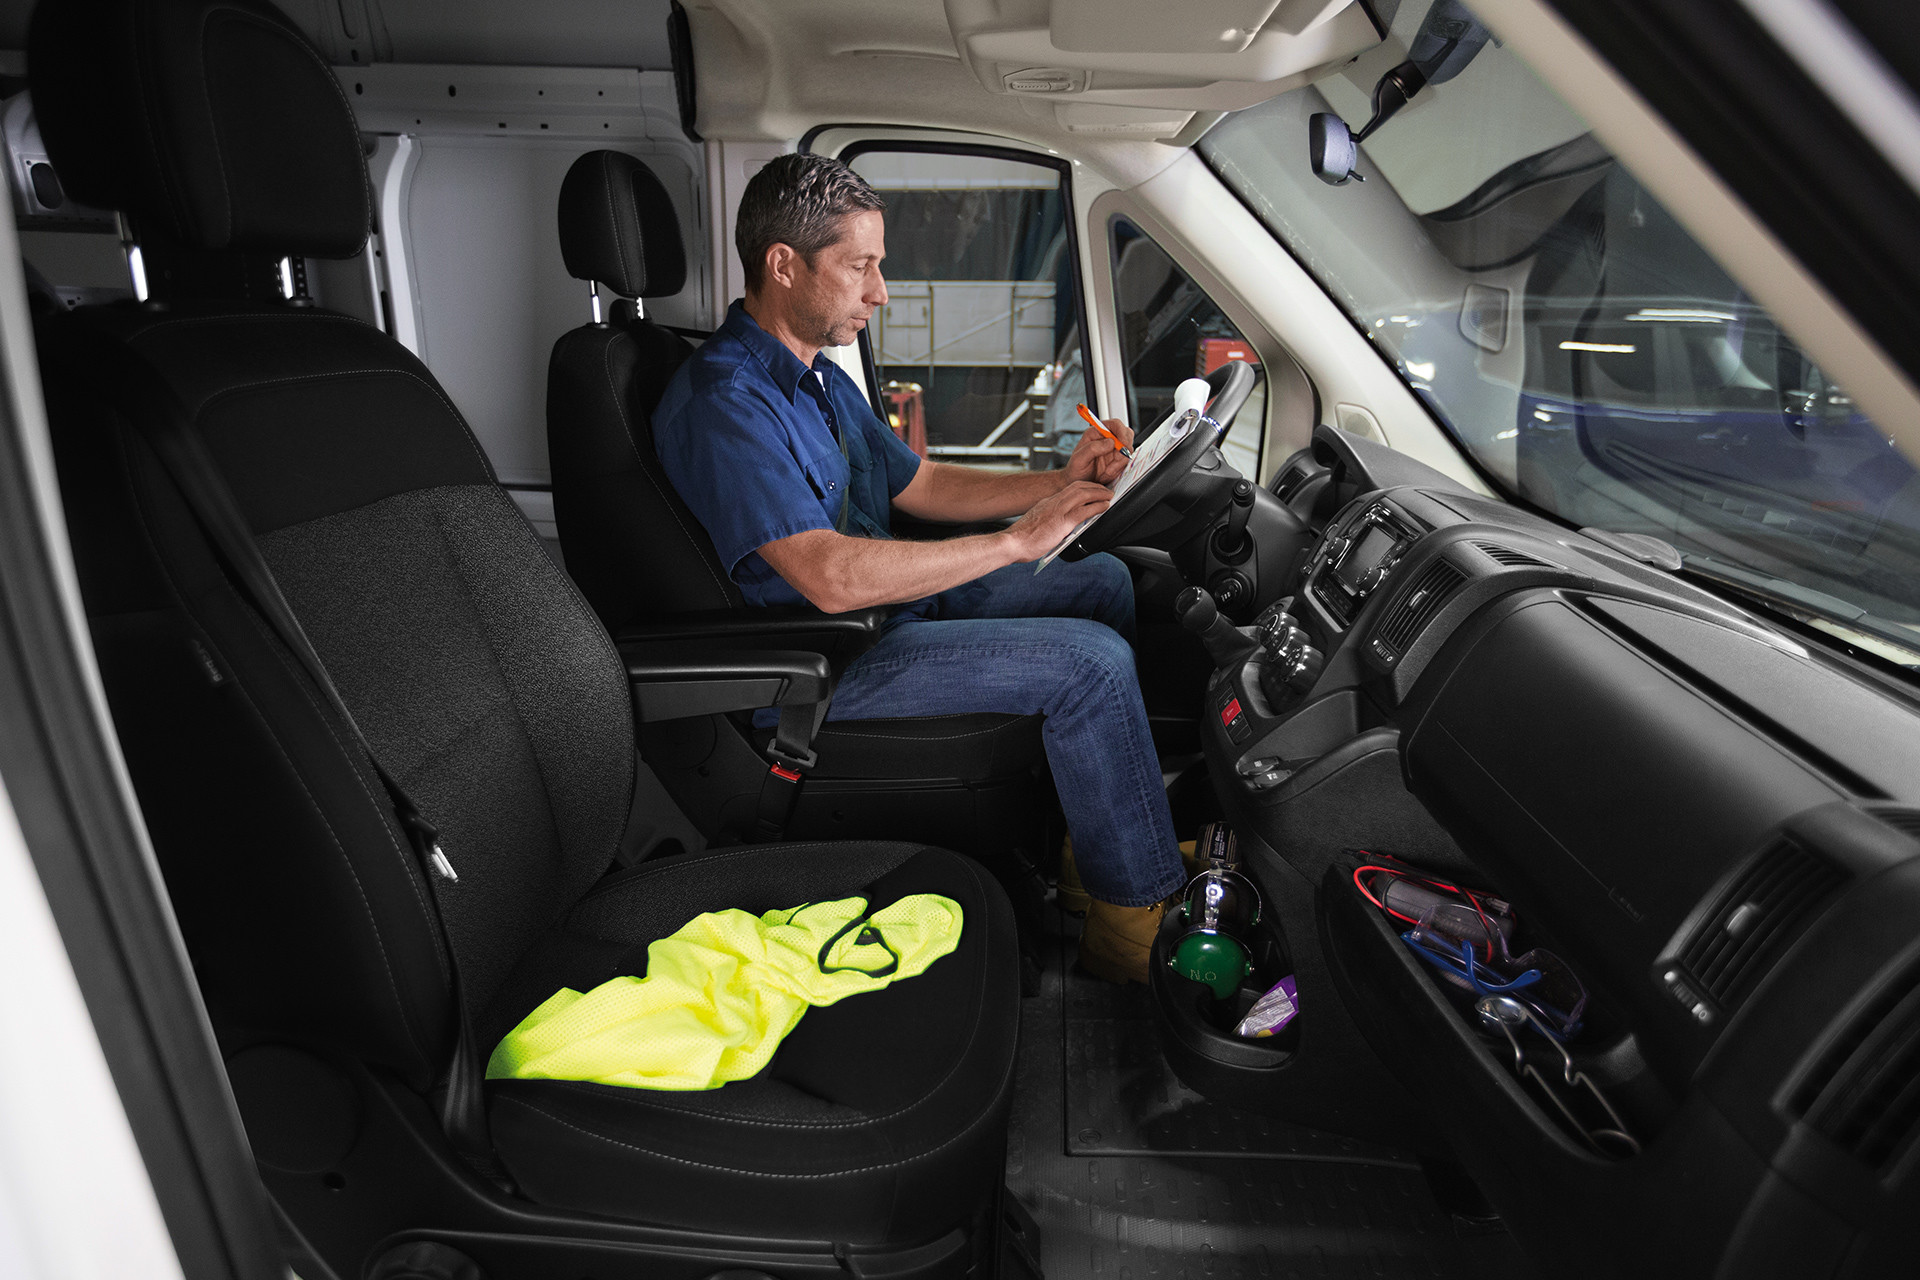 2019 Ram ProMaster interior view, showing someone driving